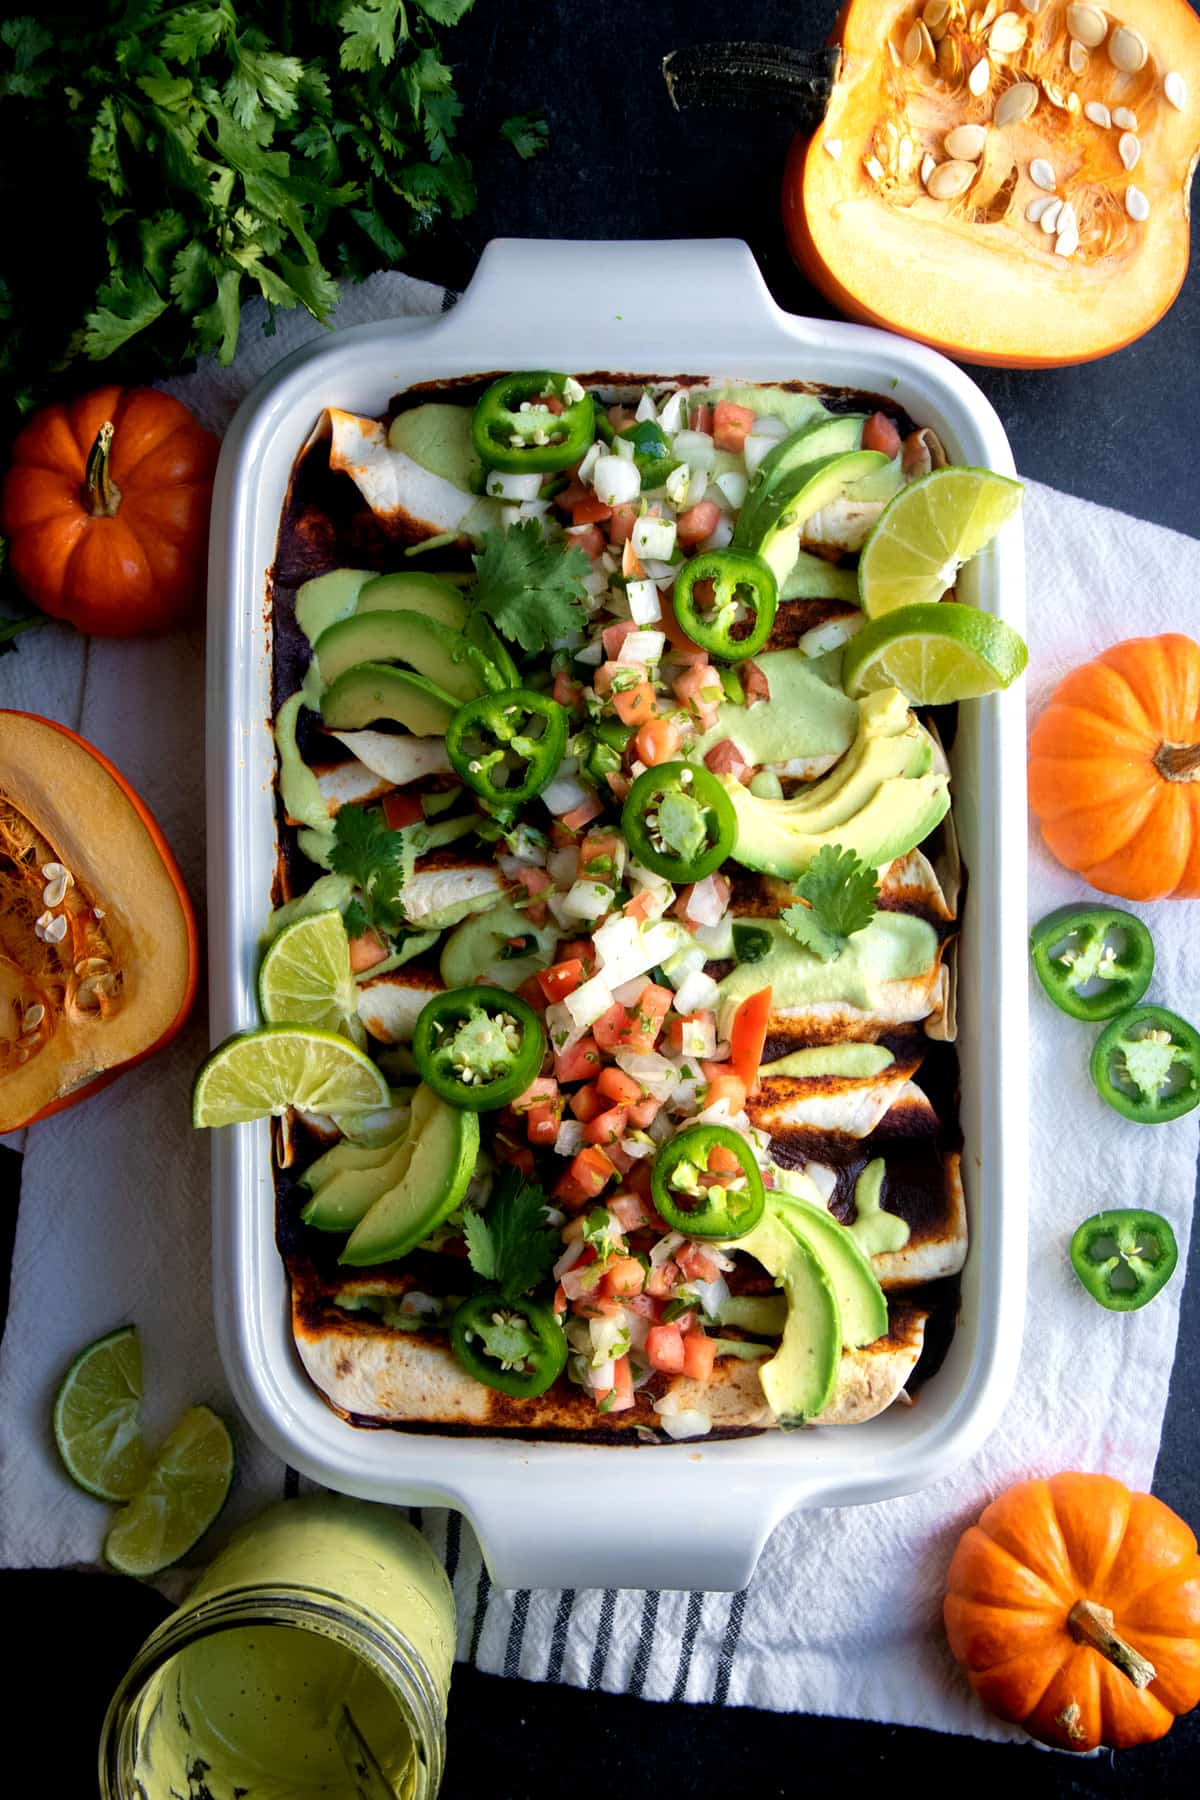 White casserole dish filled with Pumpkin and Black Bean Vegan Enchiladas